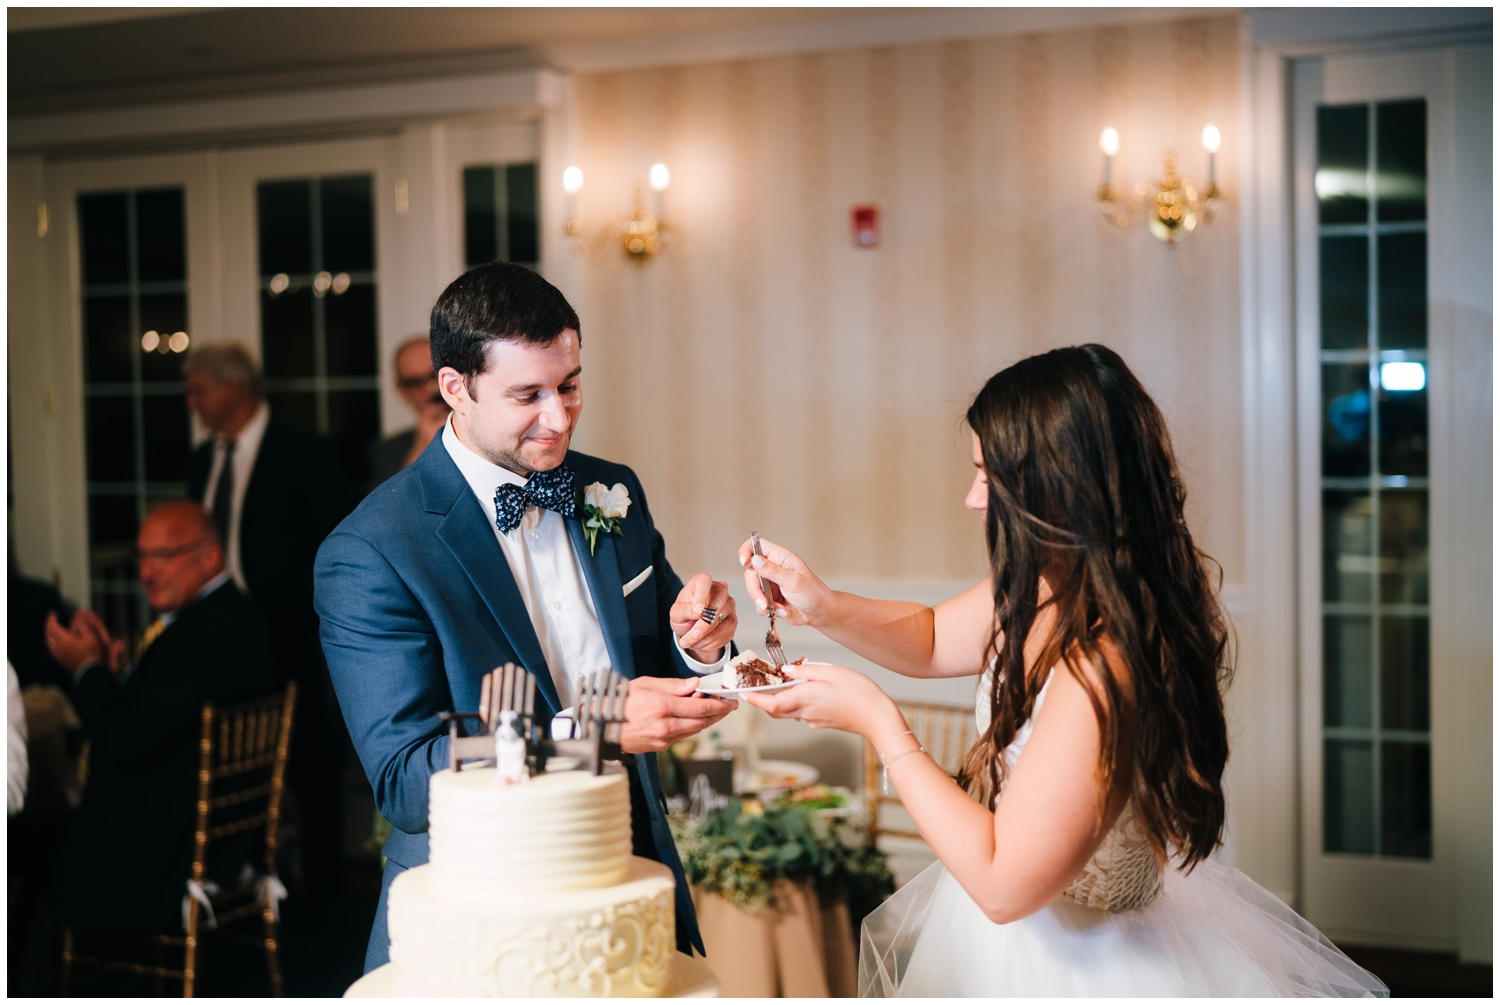 Madison Beach Hotel Wedding - Steven & Jessica_0211.jpg